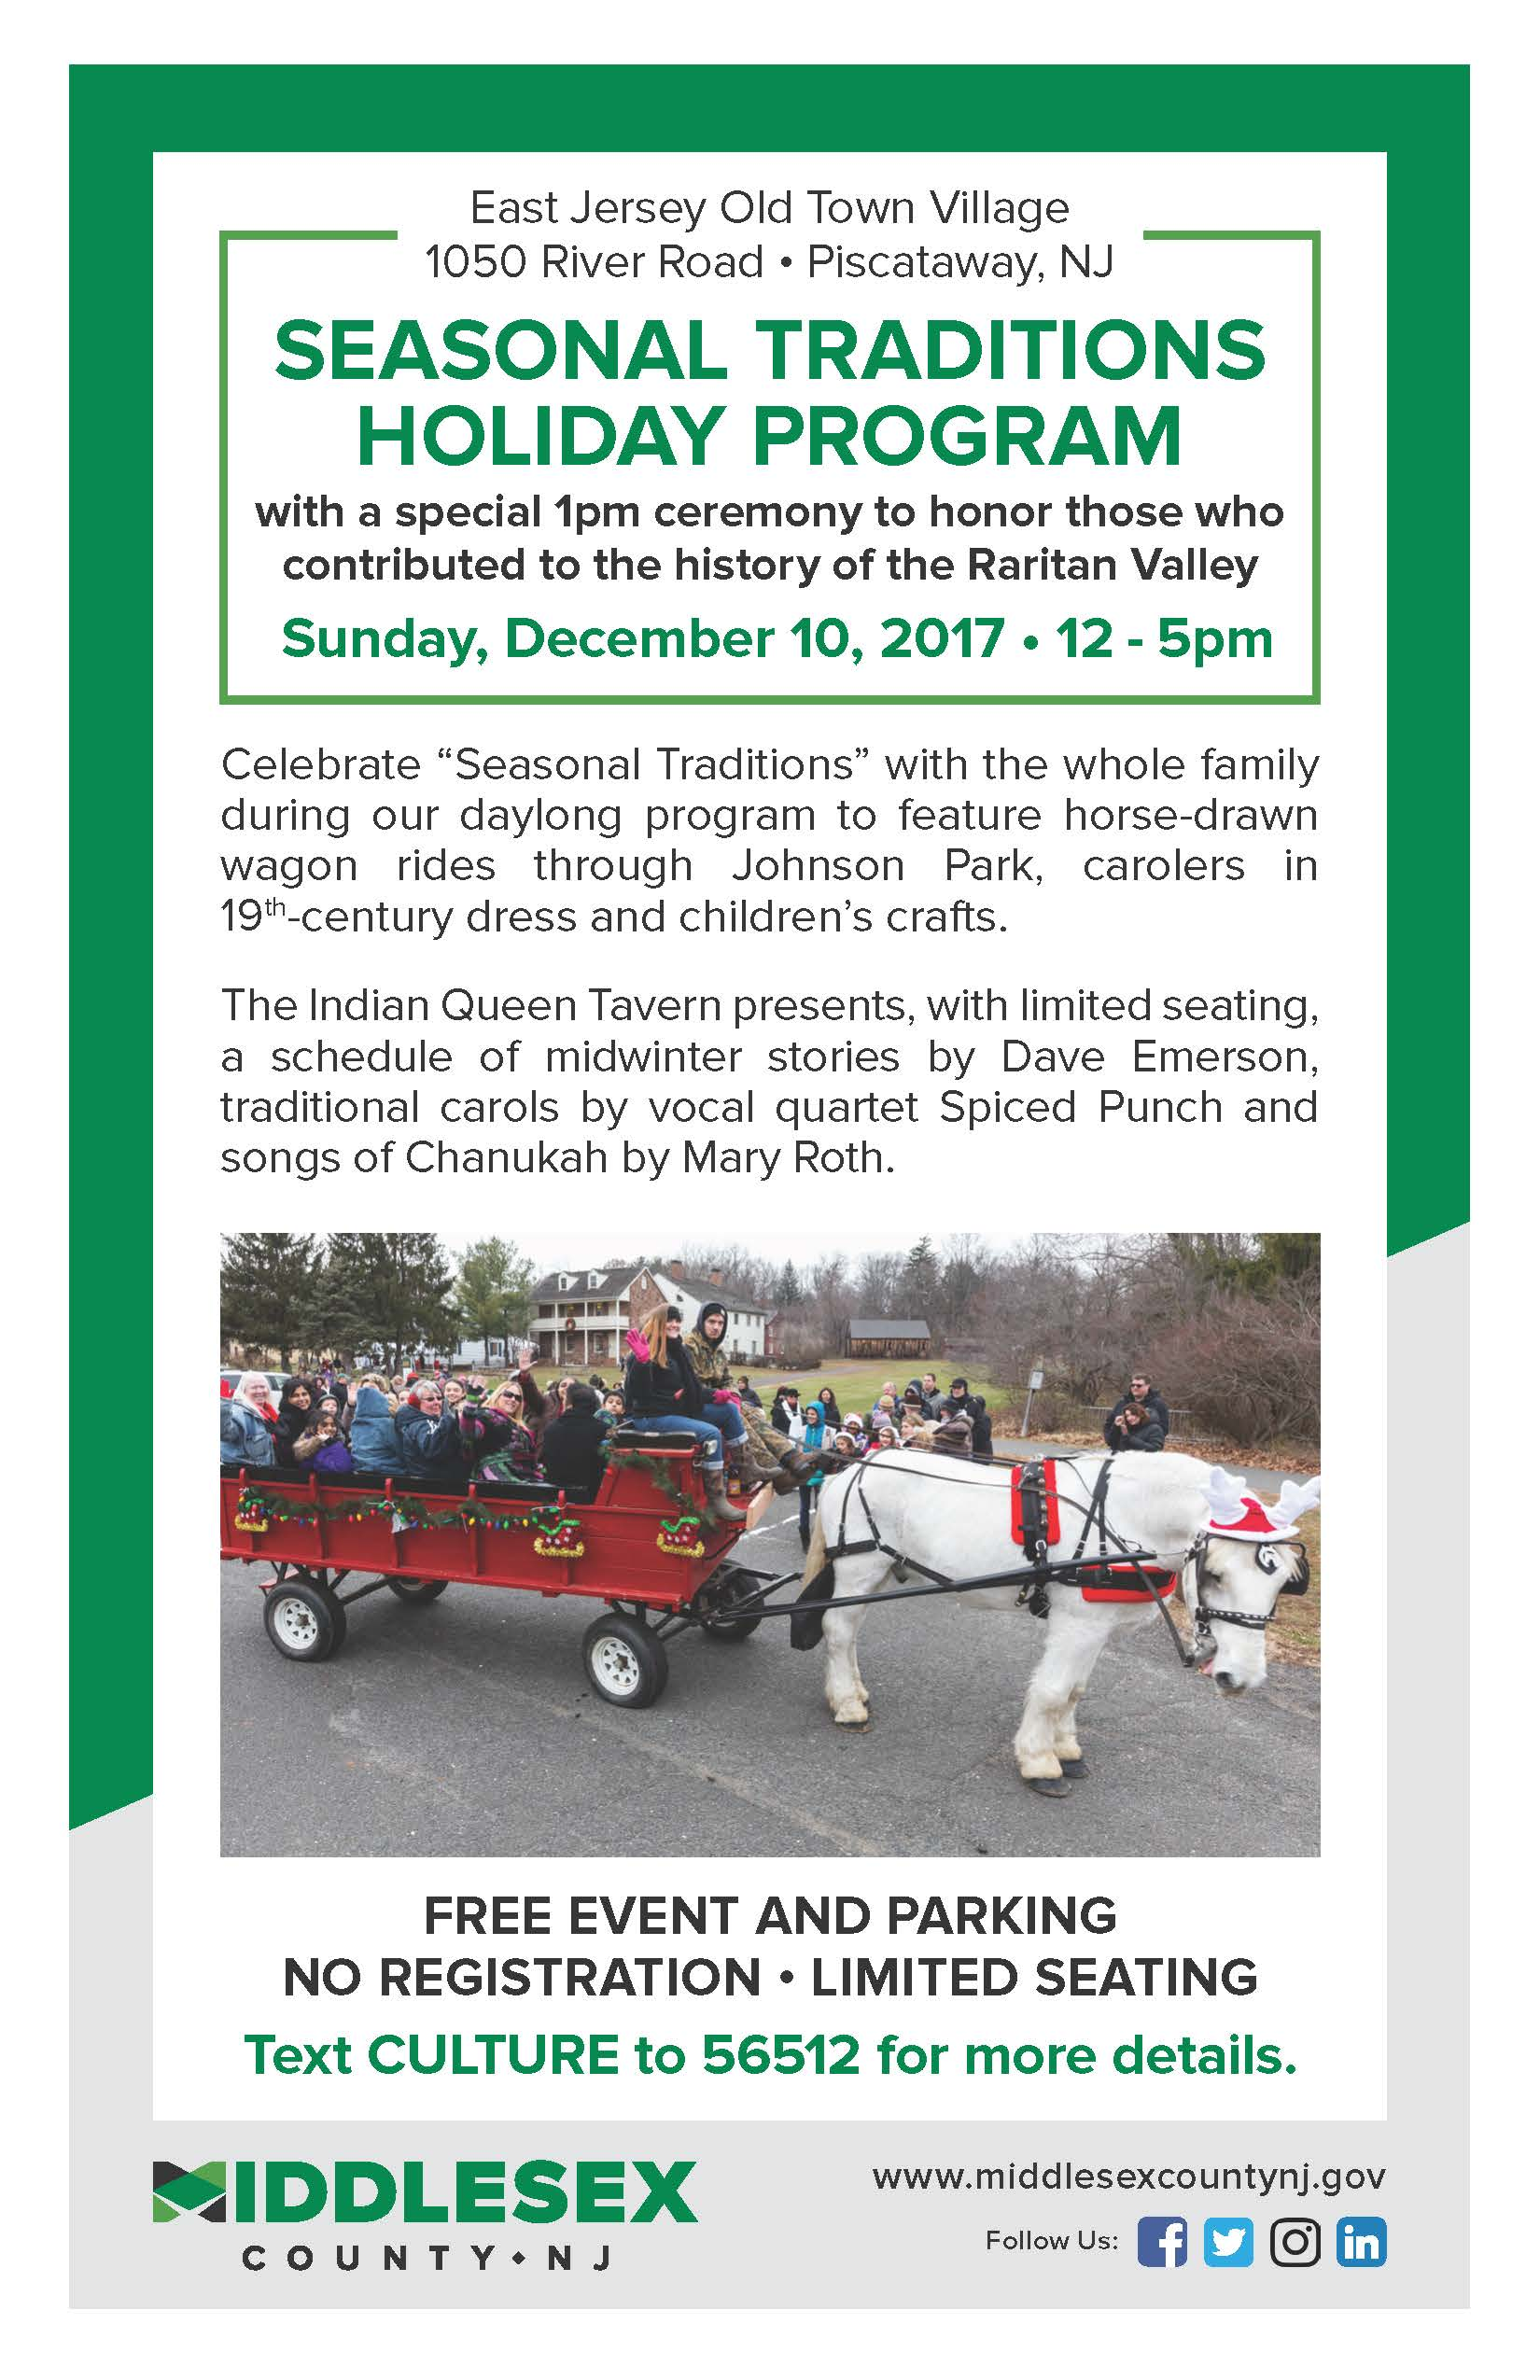 2017 Seasonal Traditions Holiday Program Mailer_Page_1